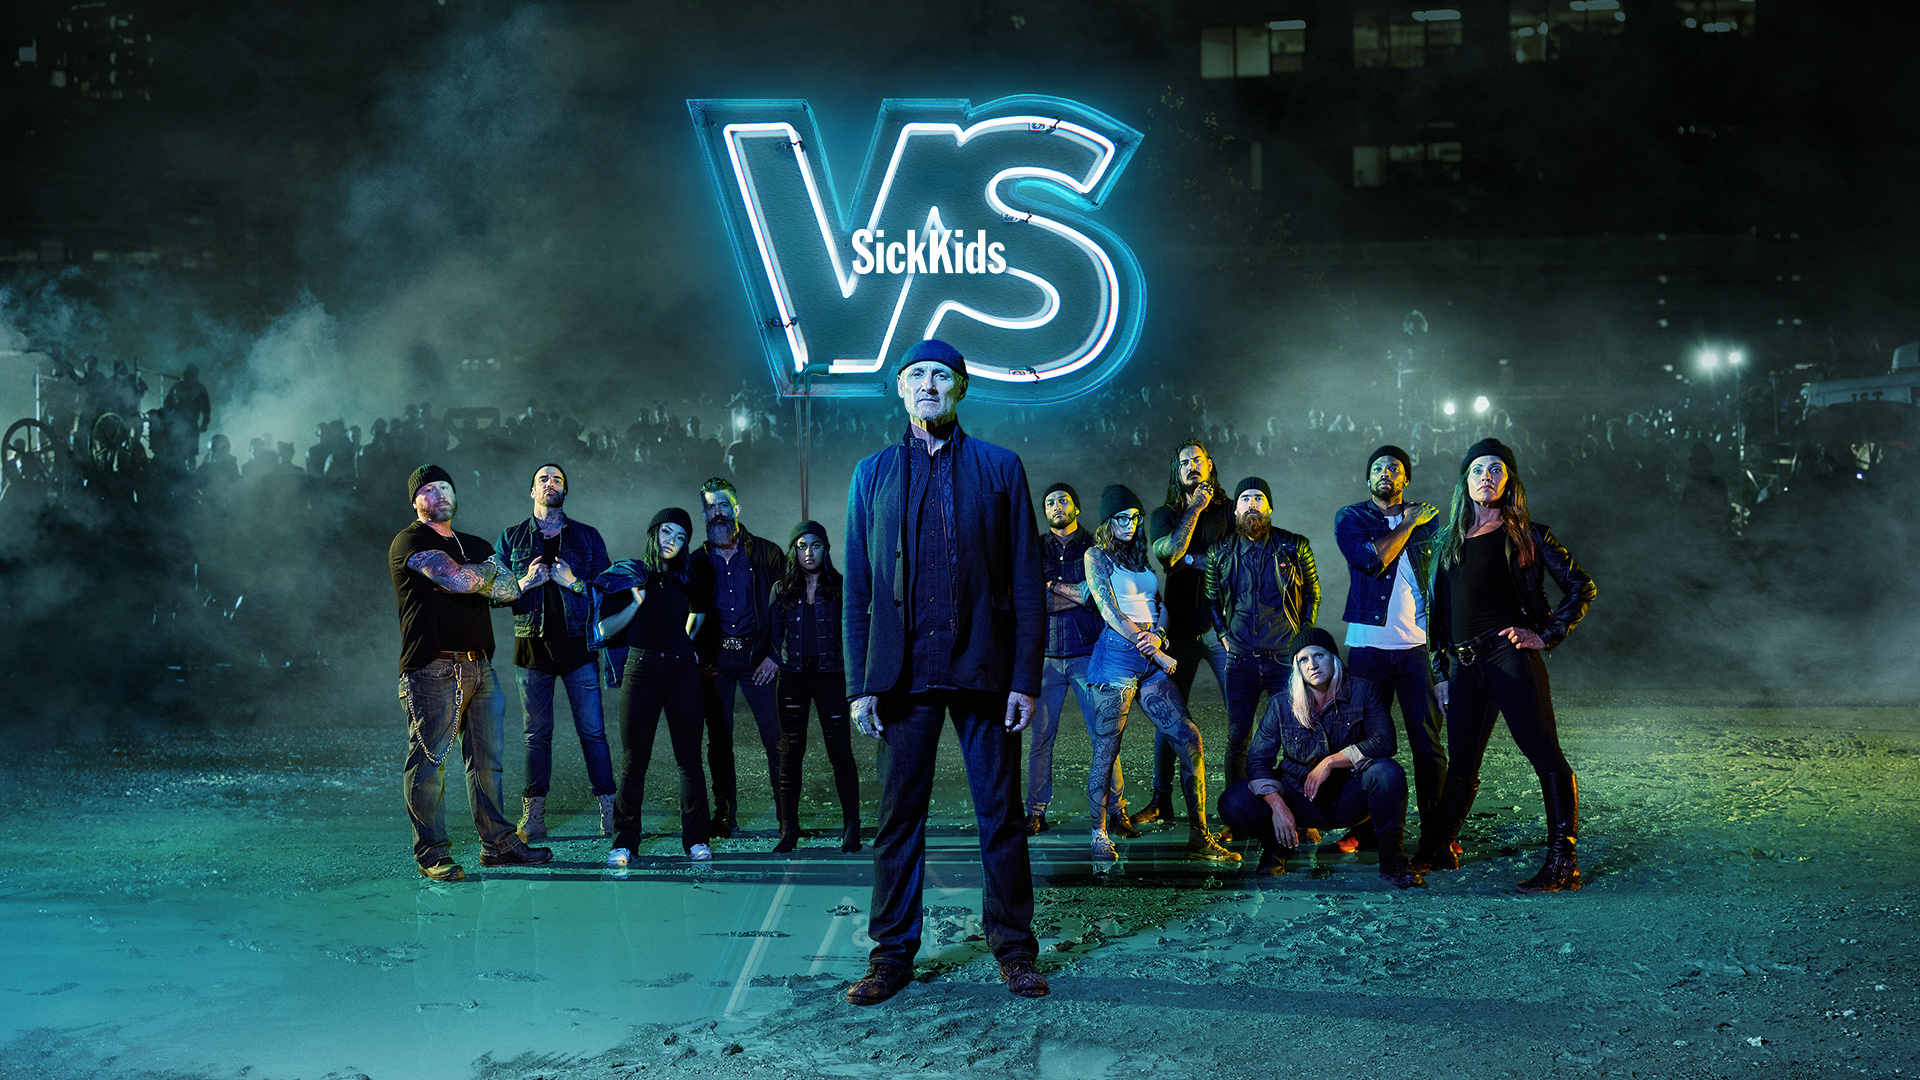 SickKids VS - Crews Thumbnail